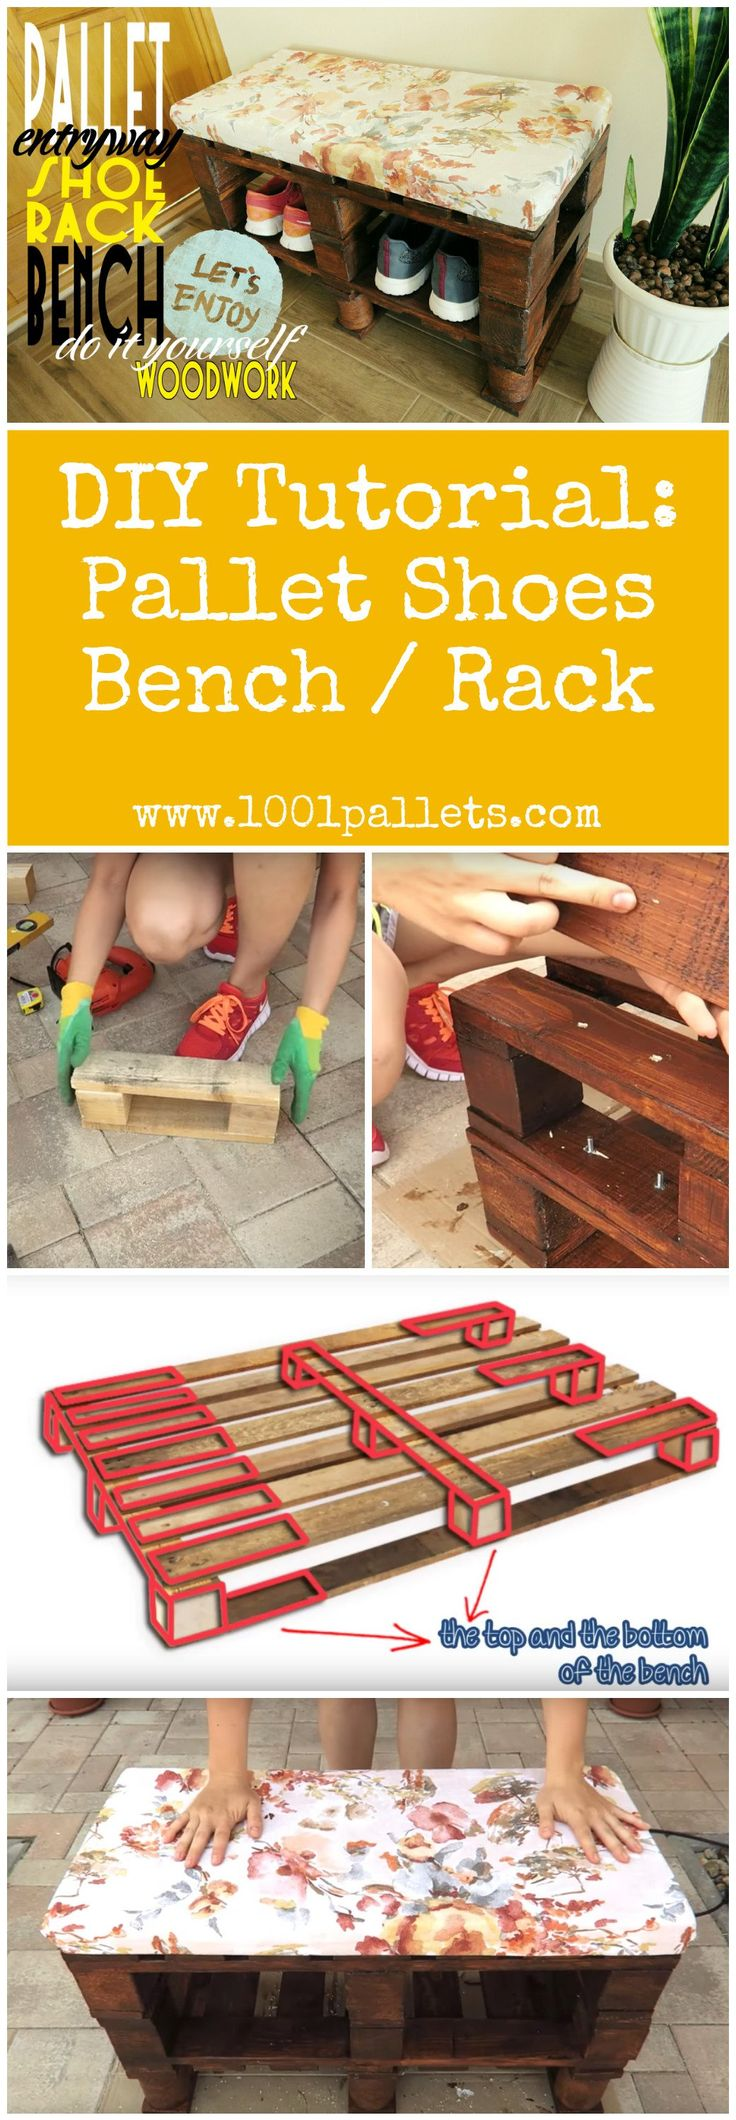 "#Diy, #Entrance, #PalletBench, #PalletShoesRack, #Tutorial    This tutorial by Bettina from ""PaintyCloud"" will show you how to make an entrance shoes bench / rack out of two pallets.    	 3 Pallets.  	 5 Hours.  	 We evaluated this project as an easy difficulty project.  Available as a PDF File. T"